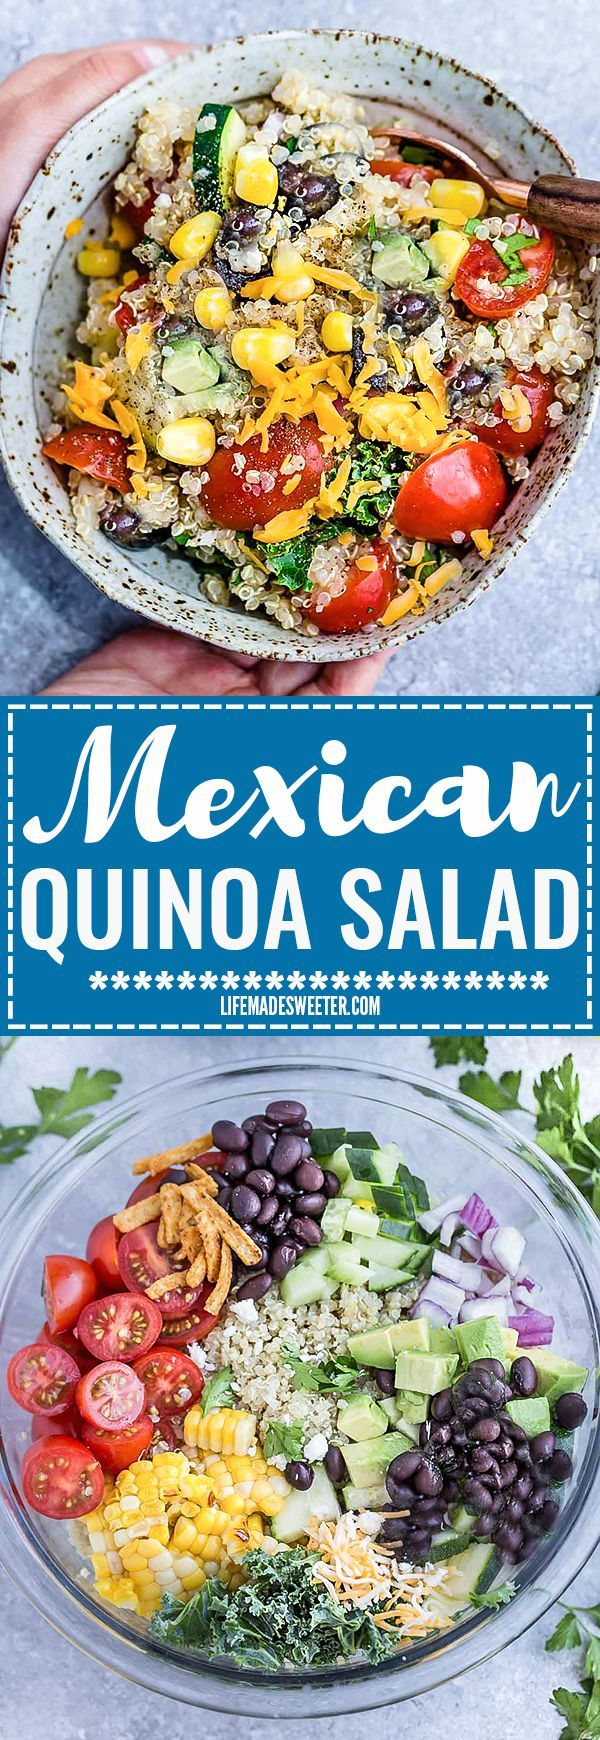 Mexican Quinoa Salad with delicious grilled corn and zucchini make the perfect summery meal. Best of all, it's so easy to customize and is loaded with cucumbers, black beans, cherry tomatoes,, red onions and optional shredded cheese and then tossed in a s